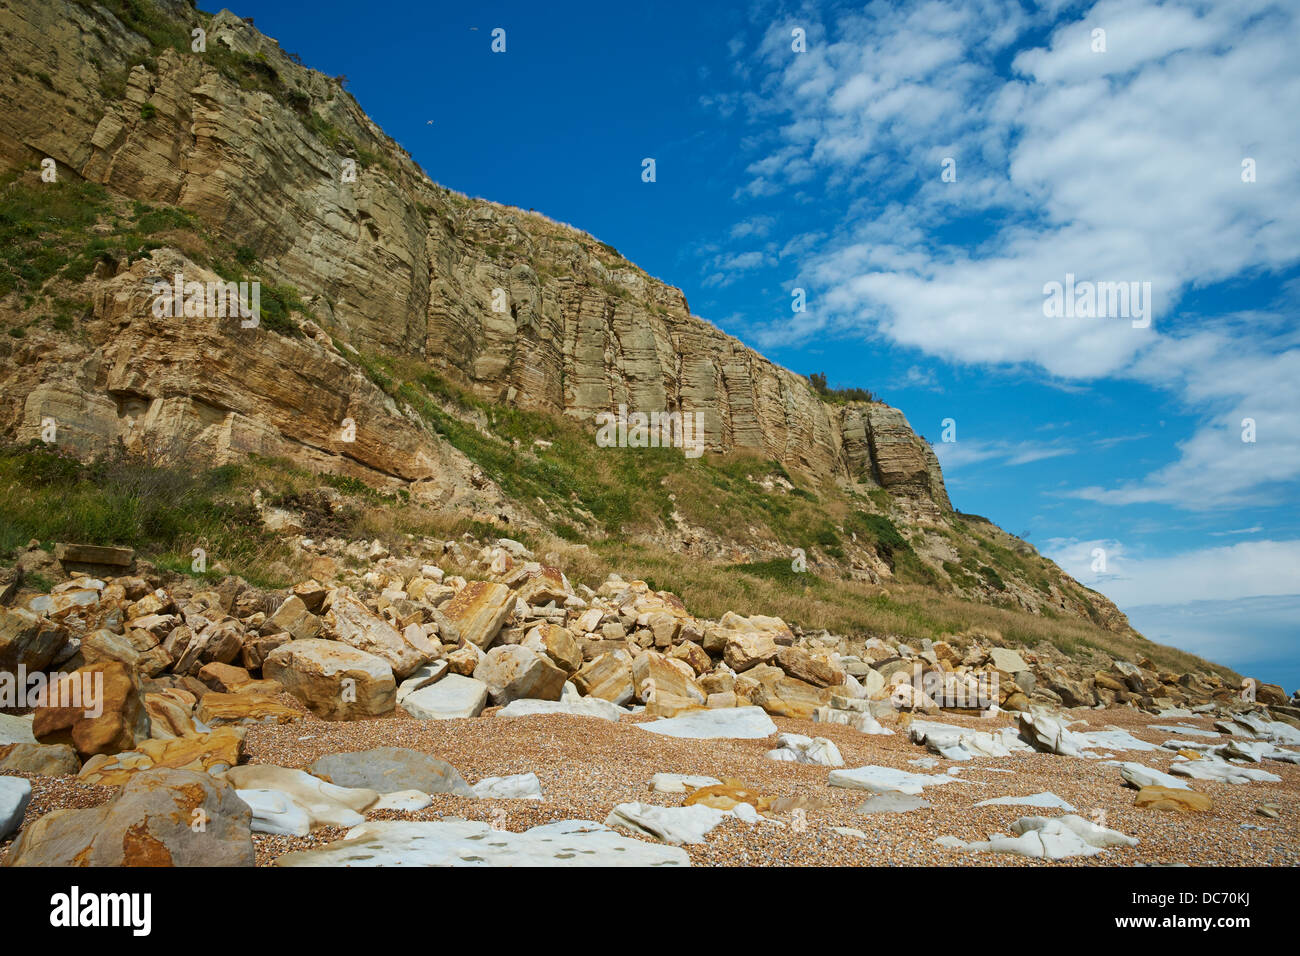 The cliff face with fallen rocks Rock-A-Nore Hastings Sussex - Stock Image